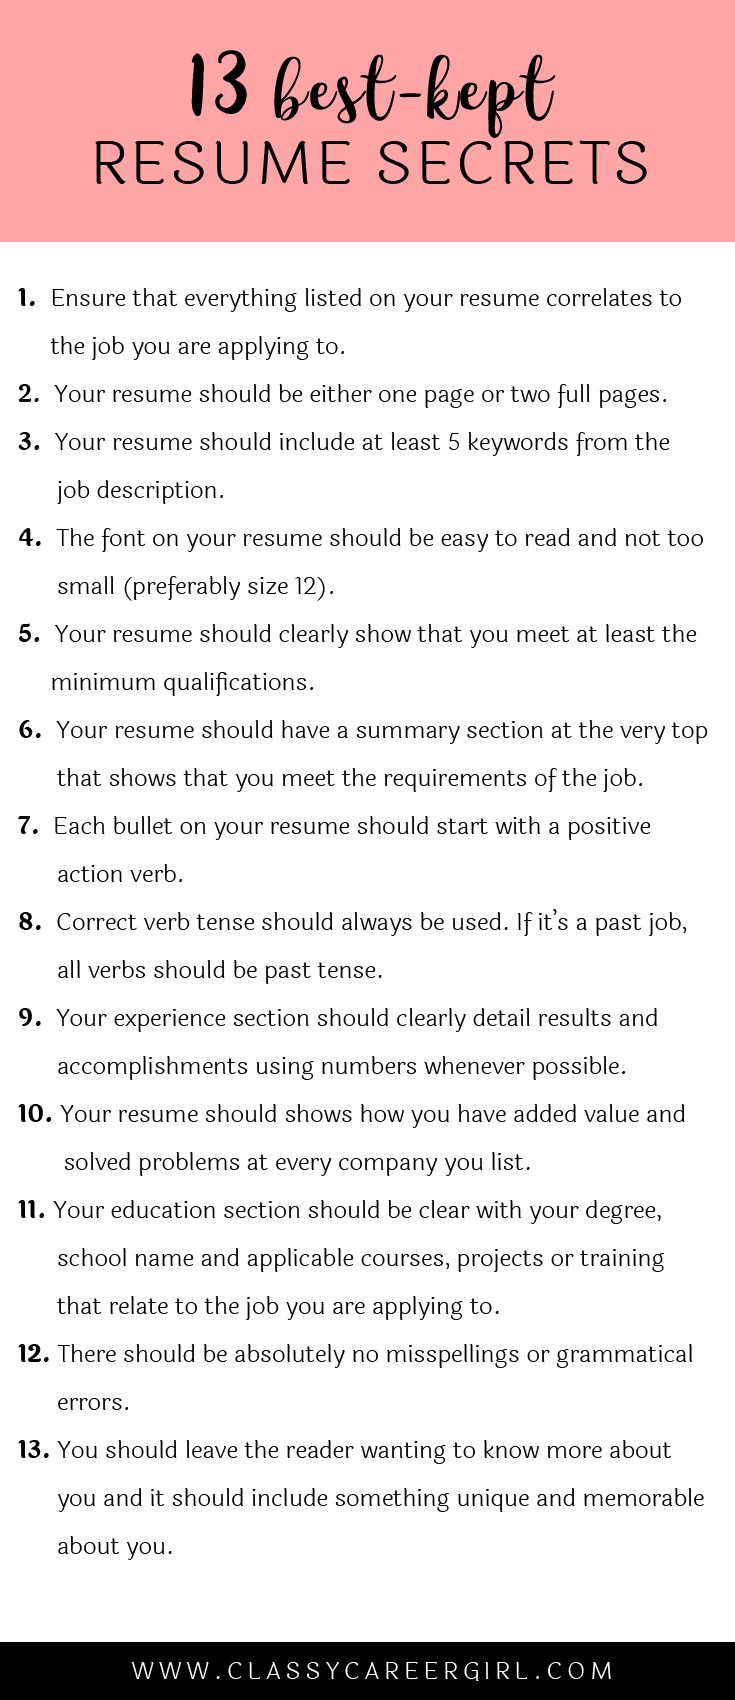 Opposenewapstandardsus  Sweet  Ideas About Resume On Pinterest  Cv Format Resume Cv And  With Interesting Some Hiring Managers Will Toss Your Resume Out If You Dont Know These  With Cute Resume Advice Also Chronological Resume Template In Addition Free Downloadable Resume Templates And Resume For Graduate School As Well As Good Resume Words Additionally Design Resume From Pinterestcom With Opposenewapstandardsus  Interesting  Ideas About Resume On Pinterest  Cv Format Resume Cv And  With Cute Some Hiring Managers Will Toss Your Resume Out If You Dont Know These  And Sweet Resume Advice Also Chronological Resume Template In Addition Free Downloadable Resume Templates From Pinterestcom